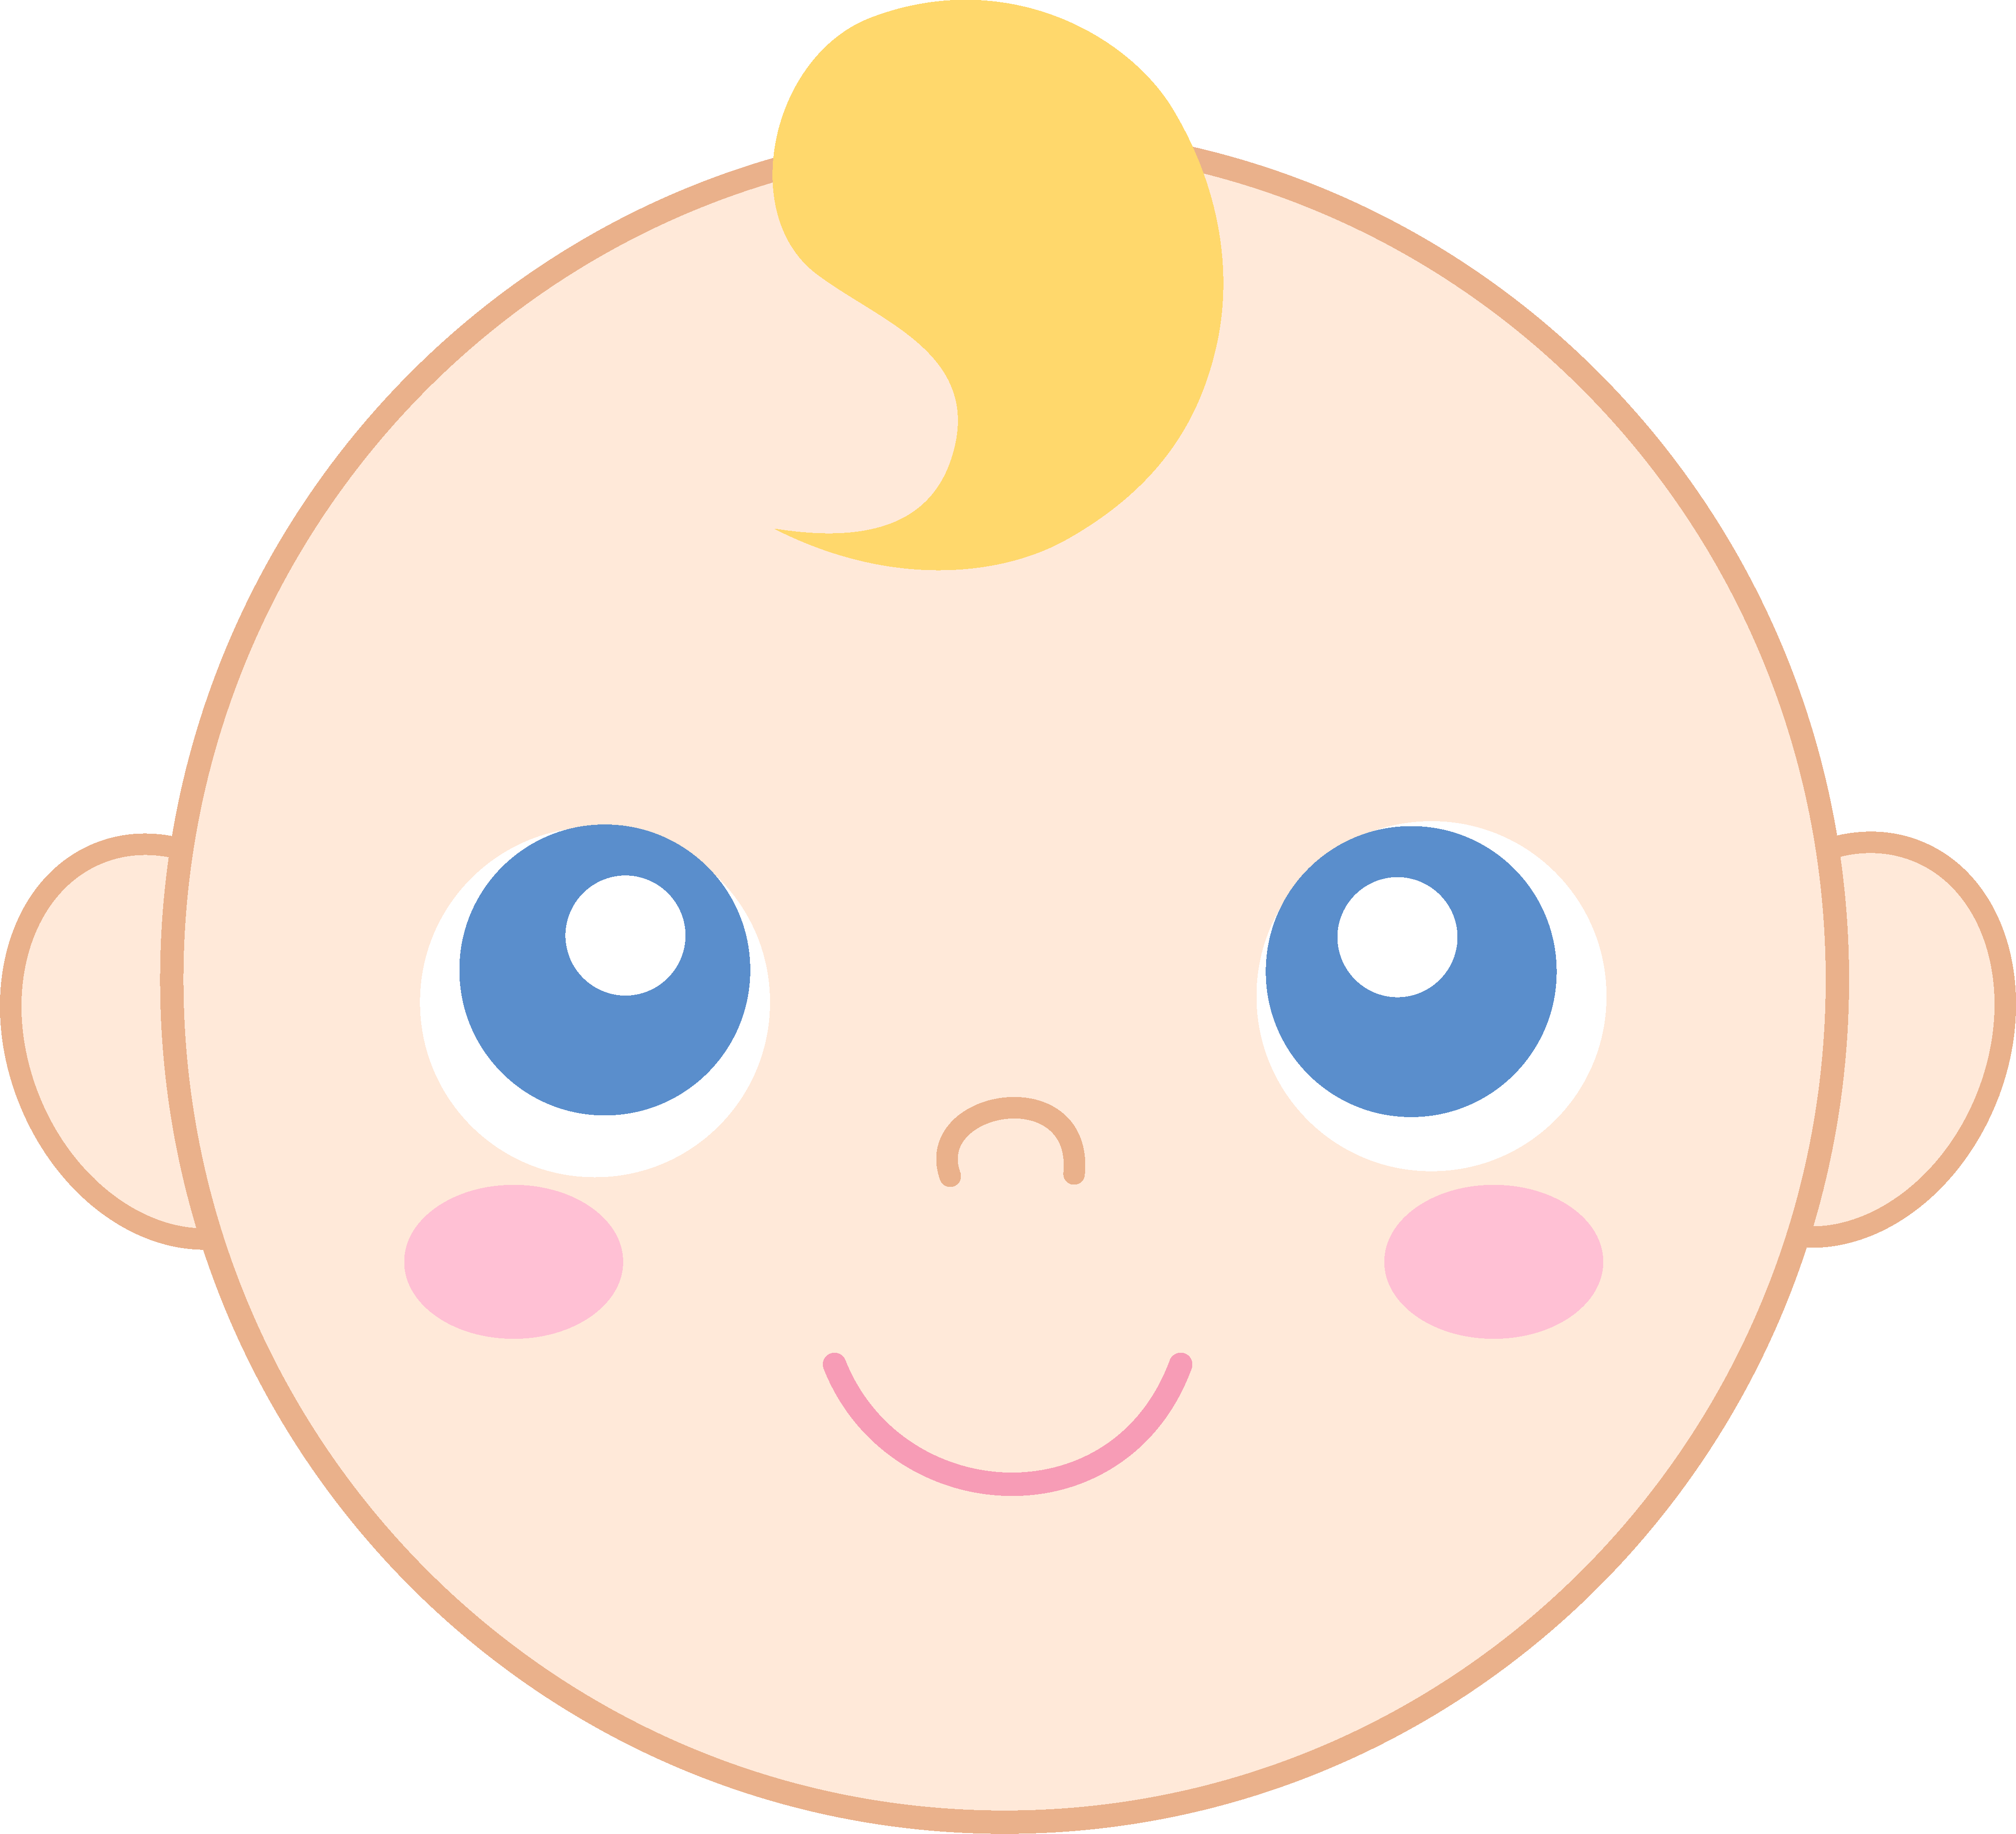 image transparent Faces clipart. Cute baby face free.